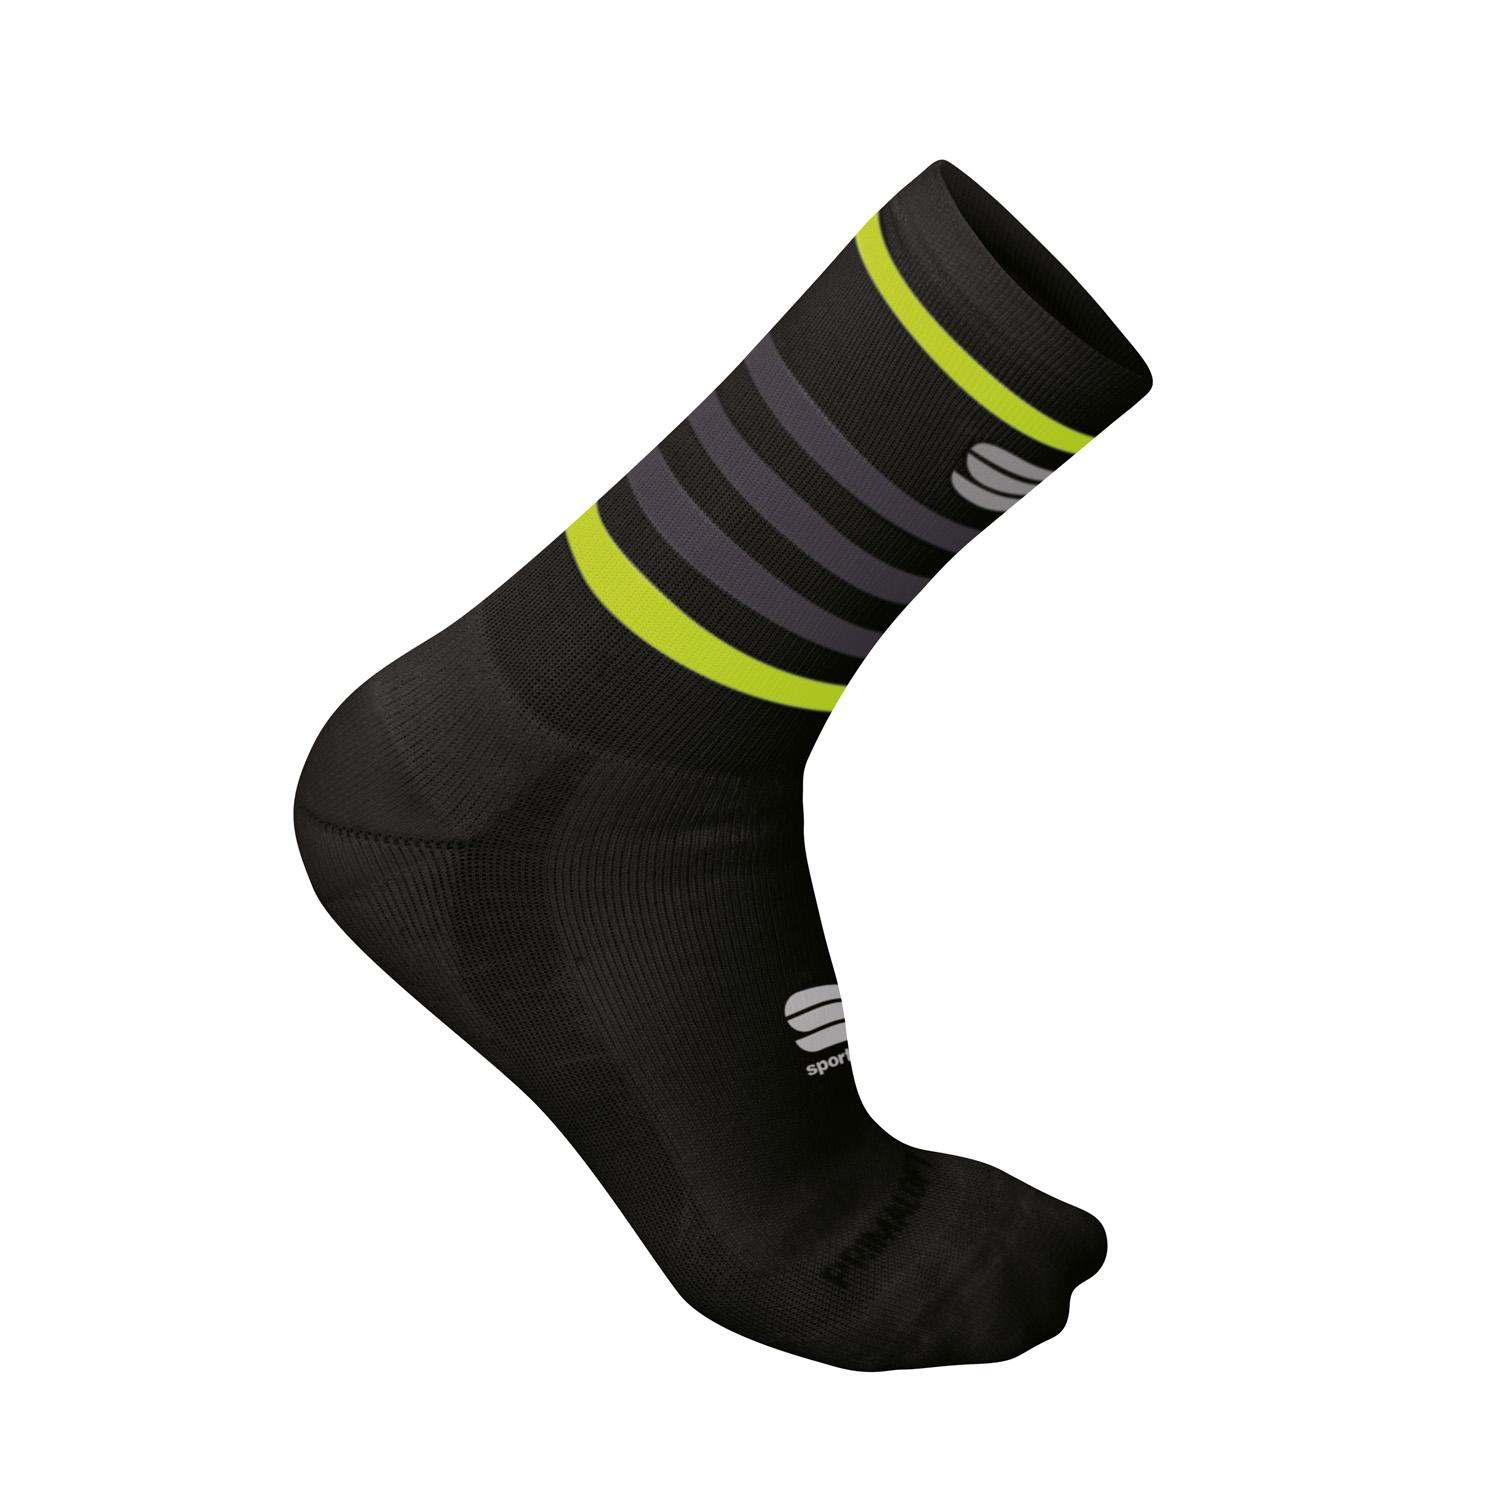 | Sportful Fietssokken winter Unisex Zwart - WINTER SOCKS BLACK YELLOW FLUO